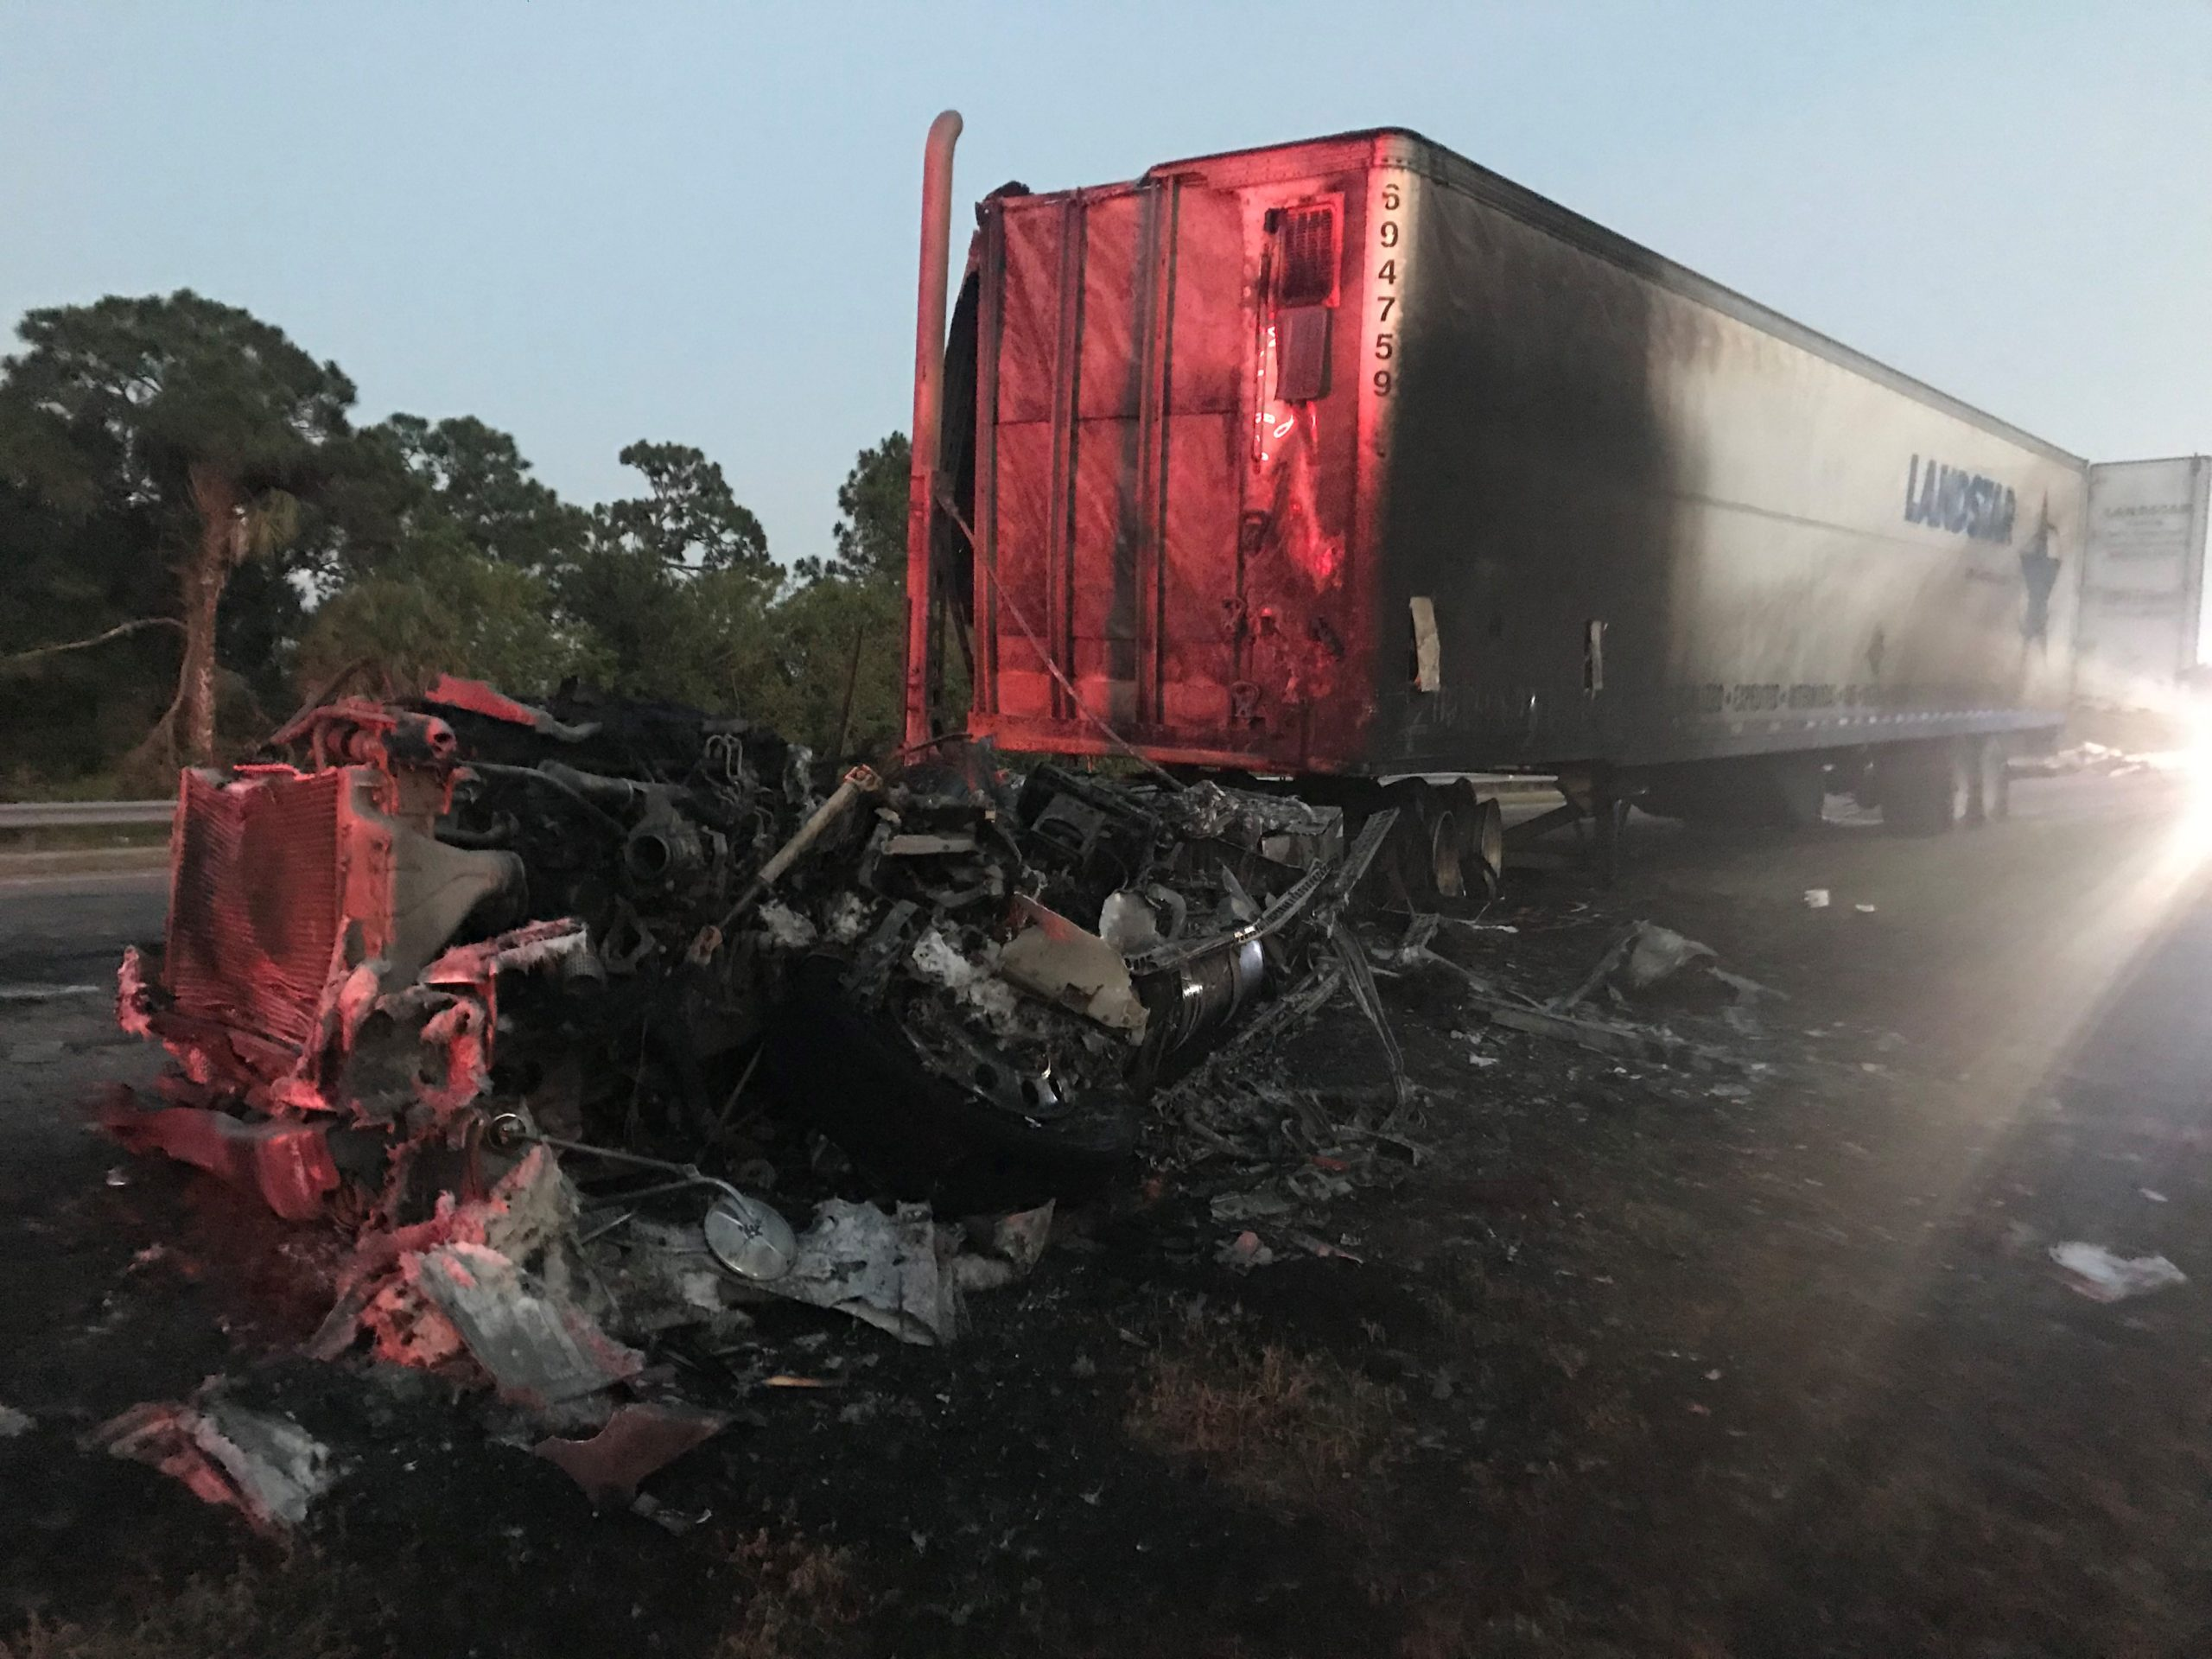 Cape Coral man dead in crash on SR-29 near Oil Well Rd in Collier County